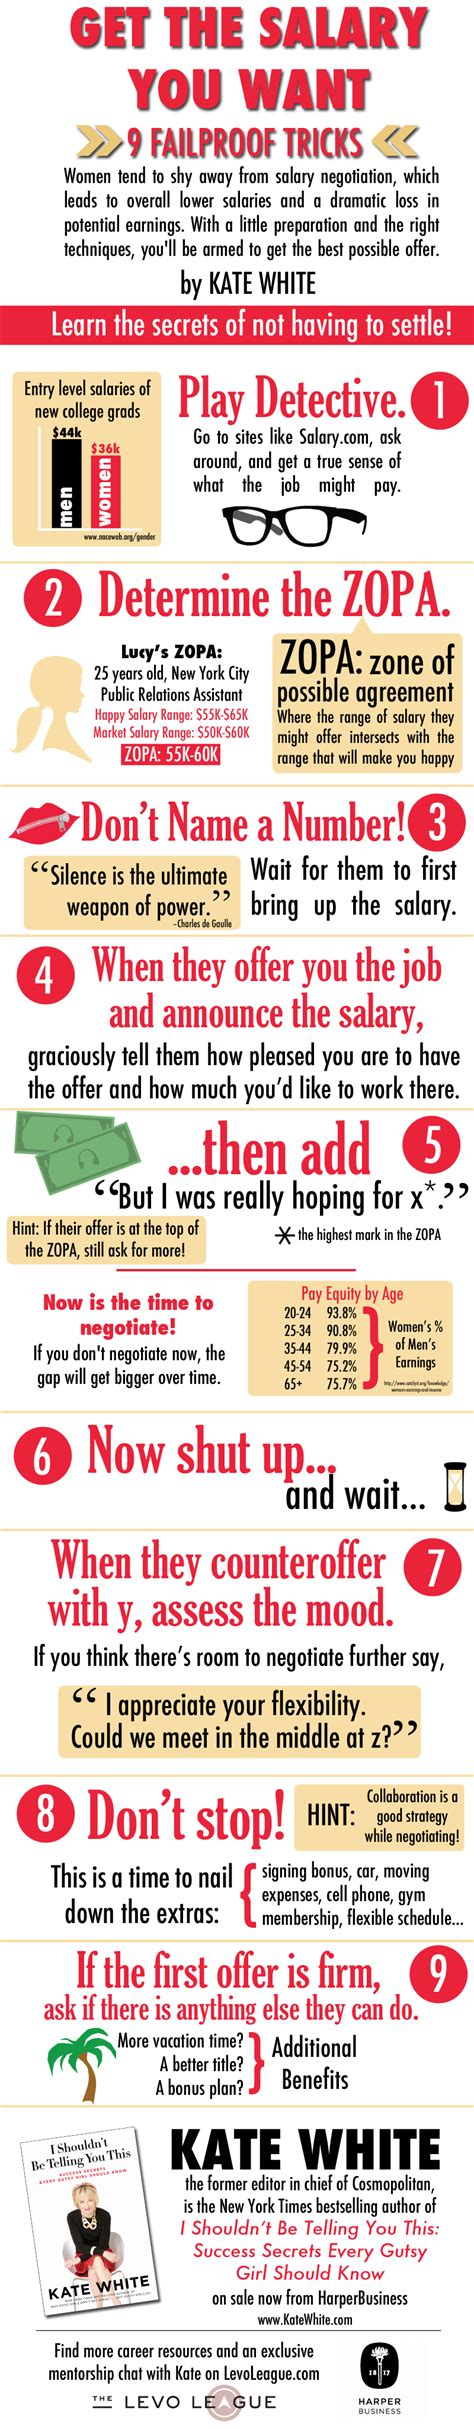 7 Interesting Negotiating Tricks And Strategies by Get The Salary You Want 9 Failproof Tricks For Salary